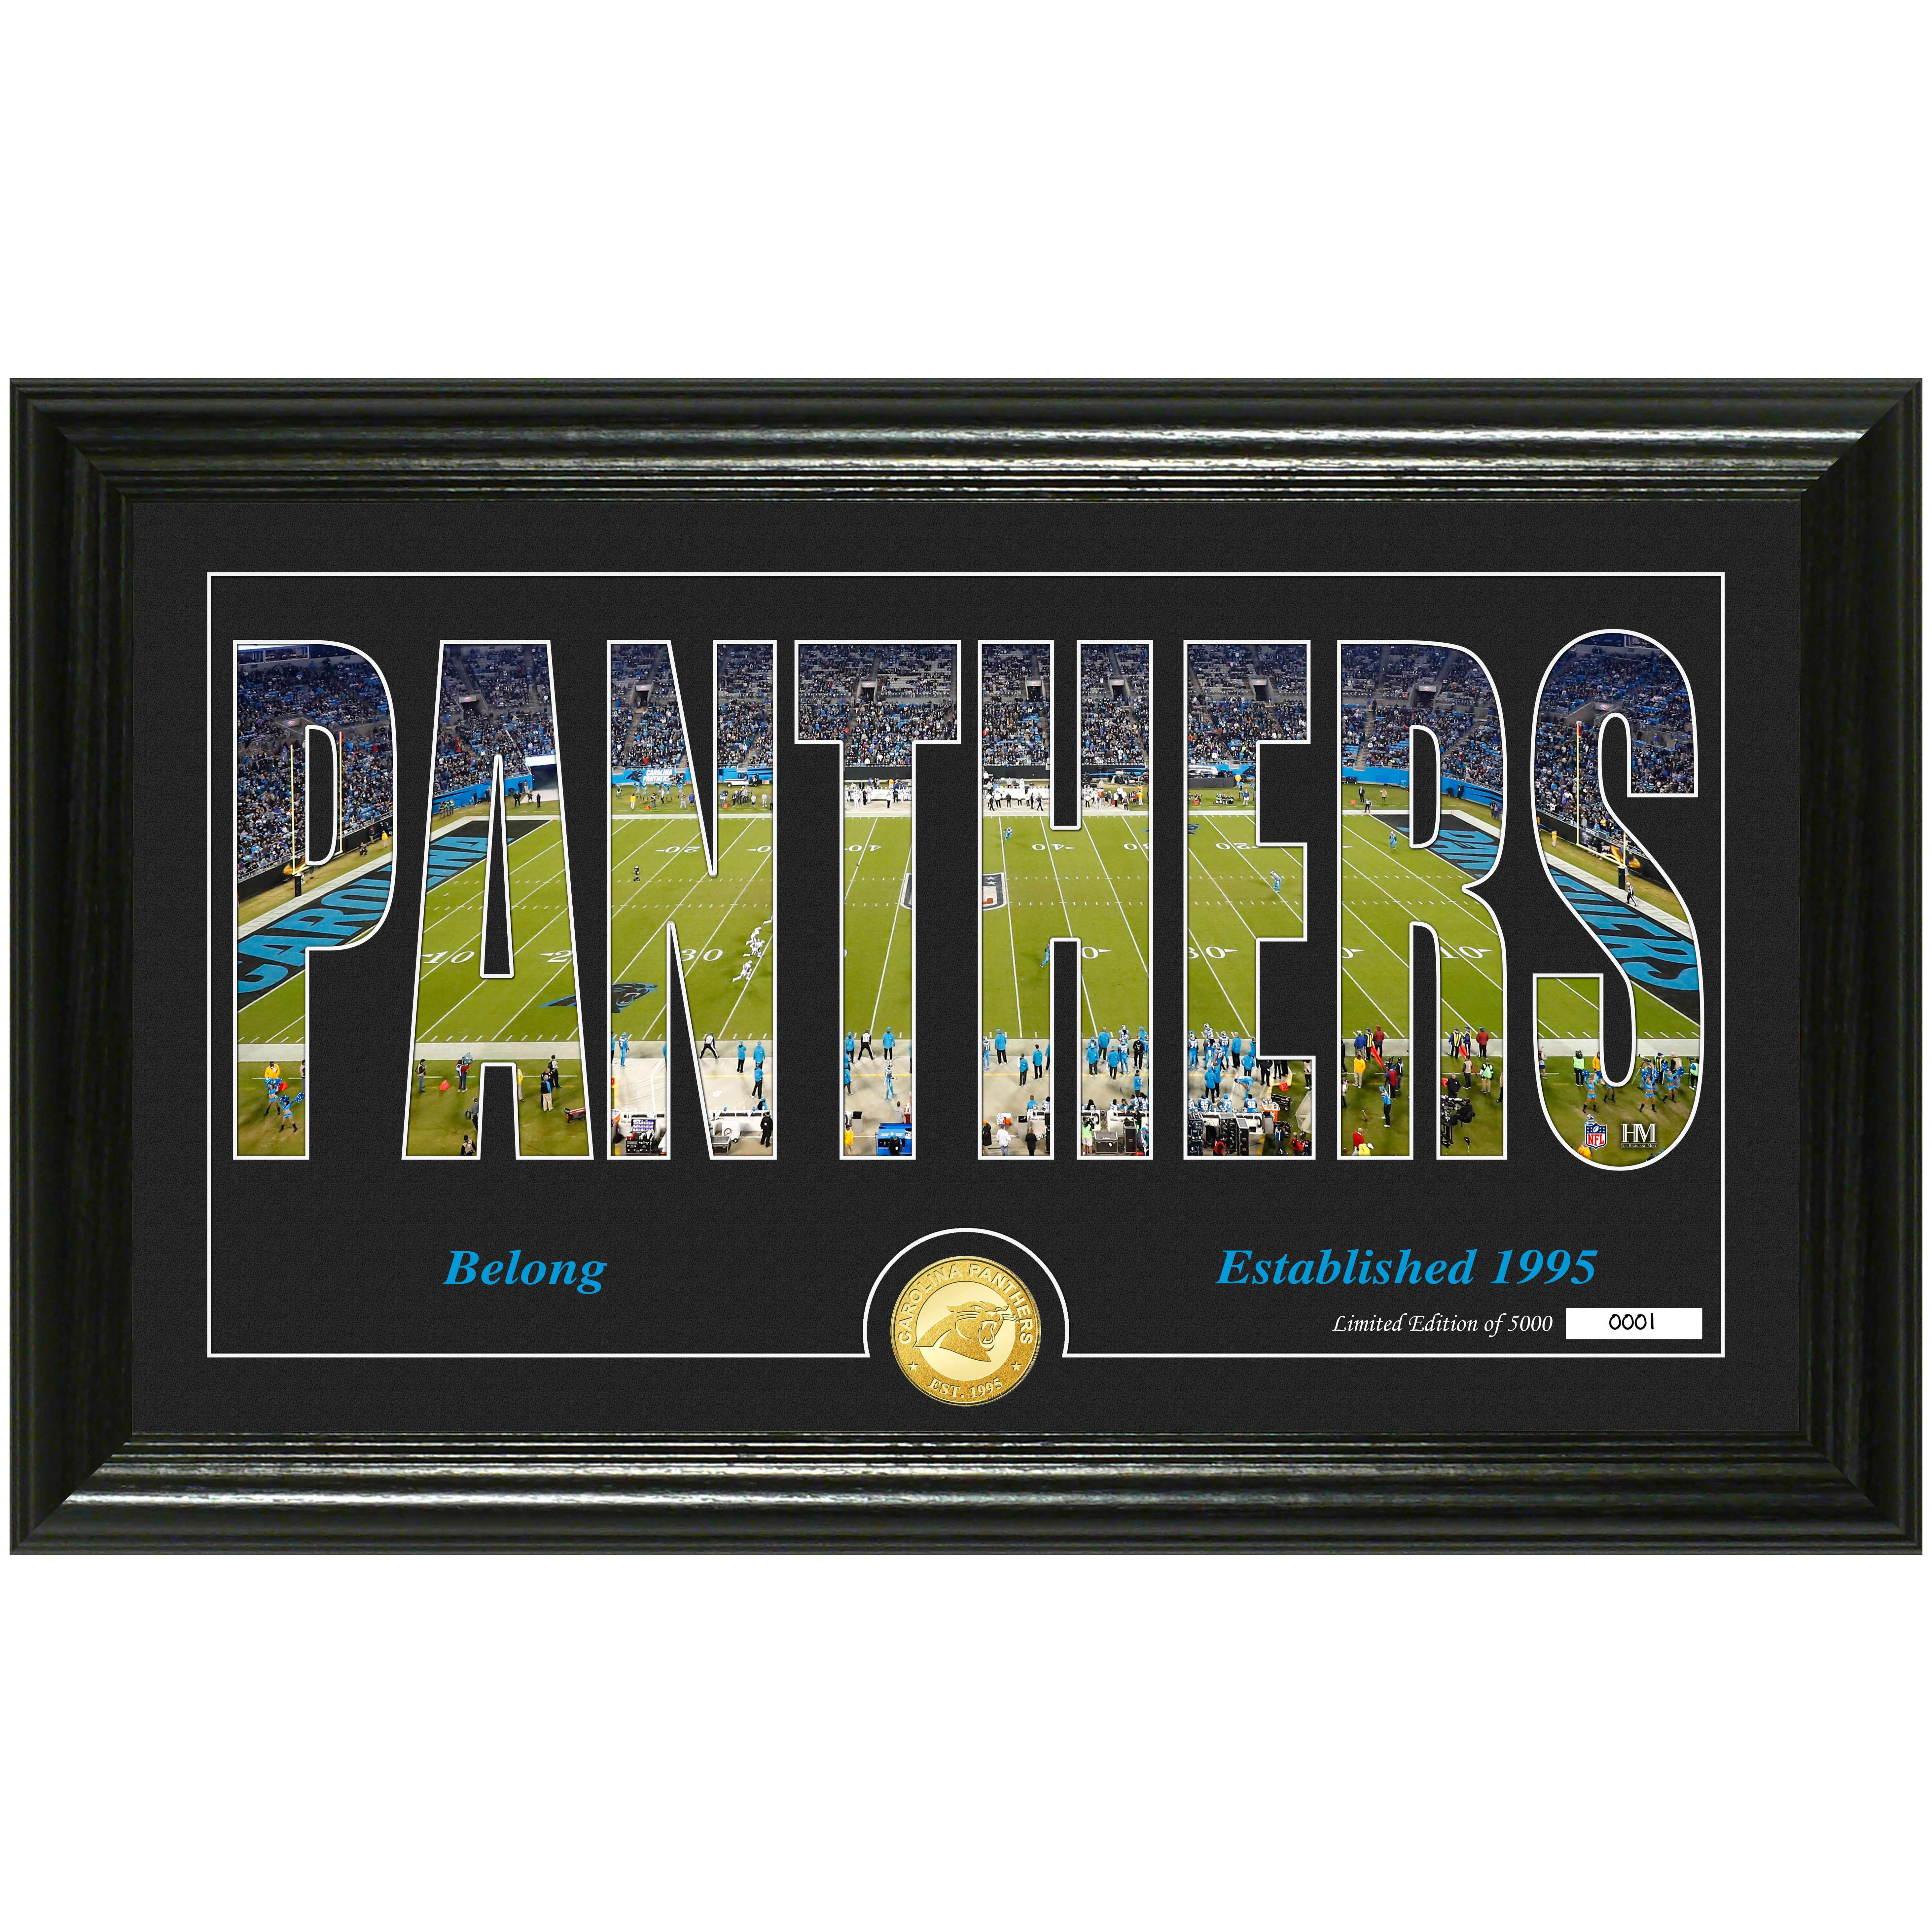 "Carolina Panthers Highland Mint 12"" x 20"" Silhouette Panoramic Photo Mint - No Size"